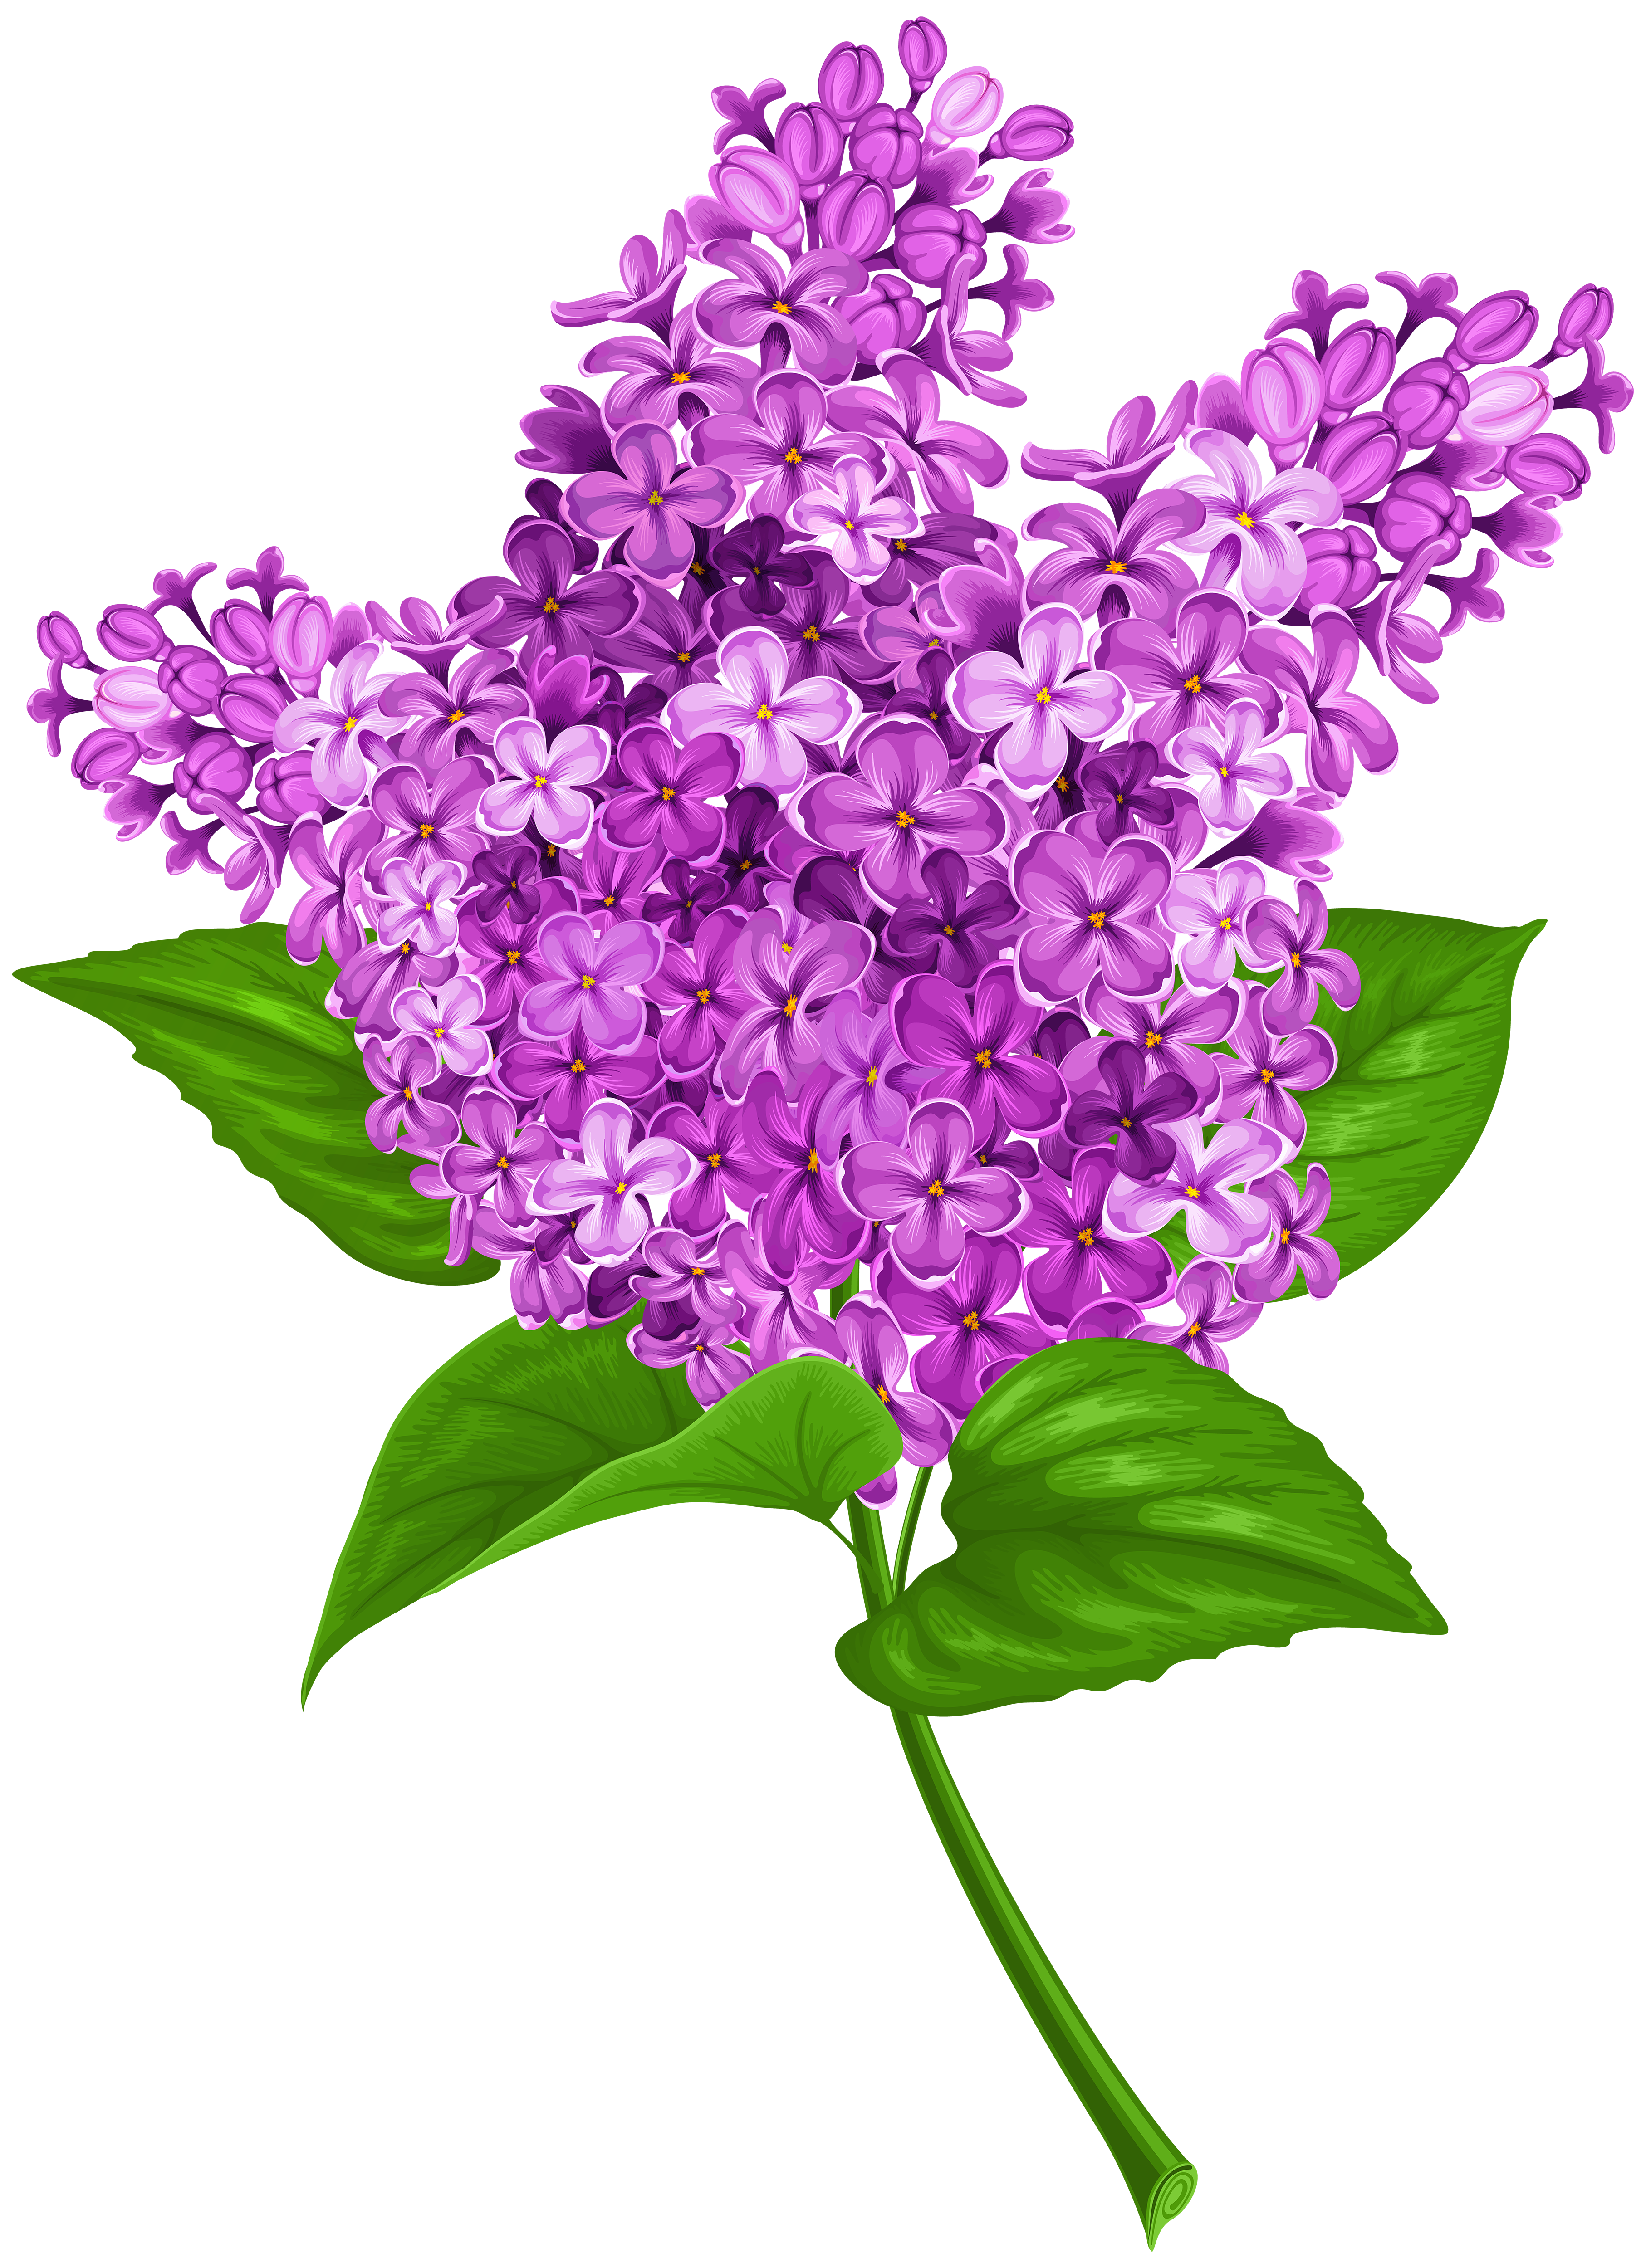 Free Lilac Png & Free Lilac.png Transparent Images #17476.